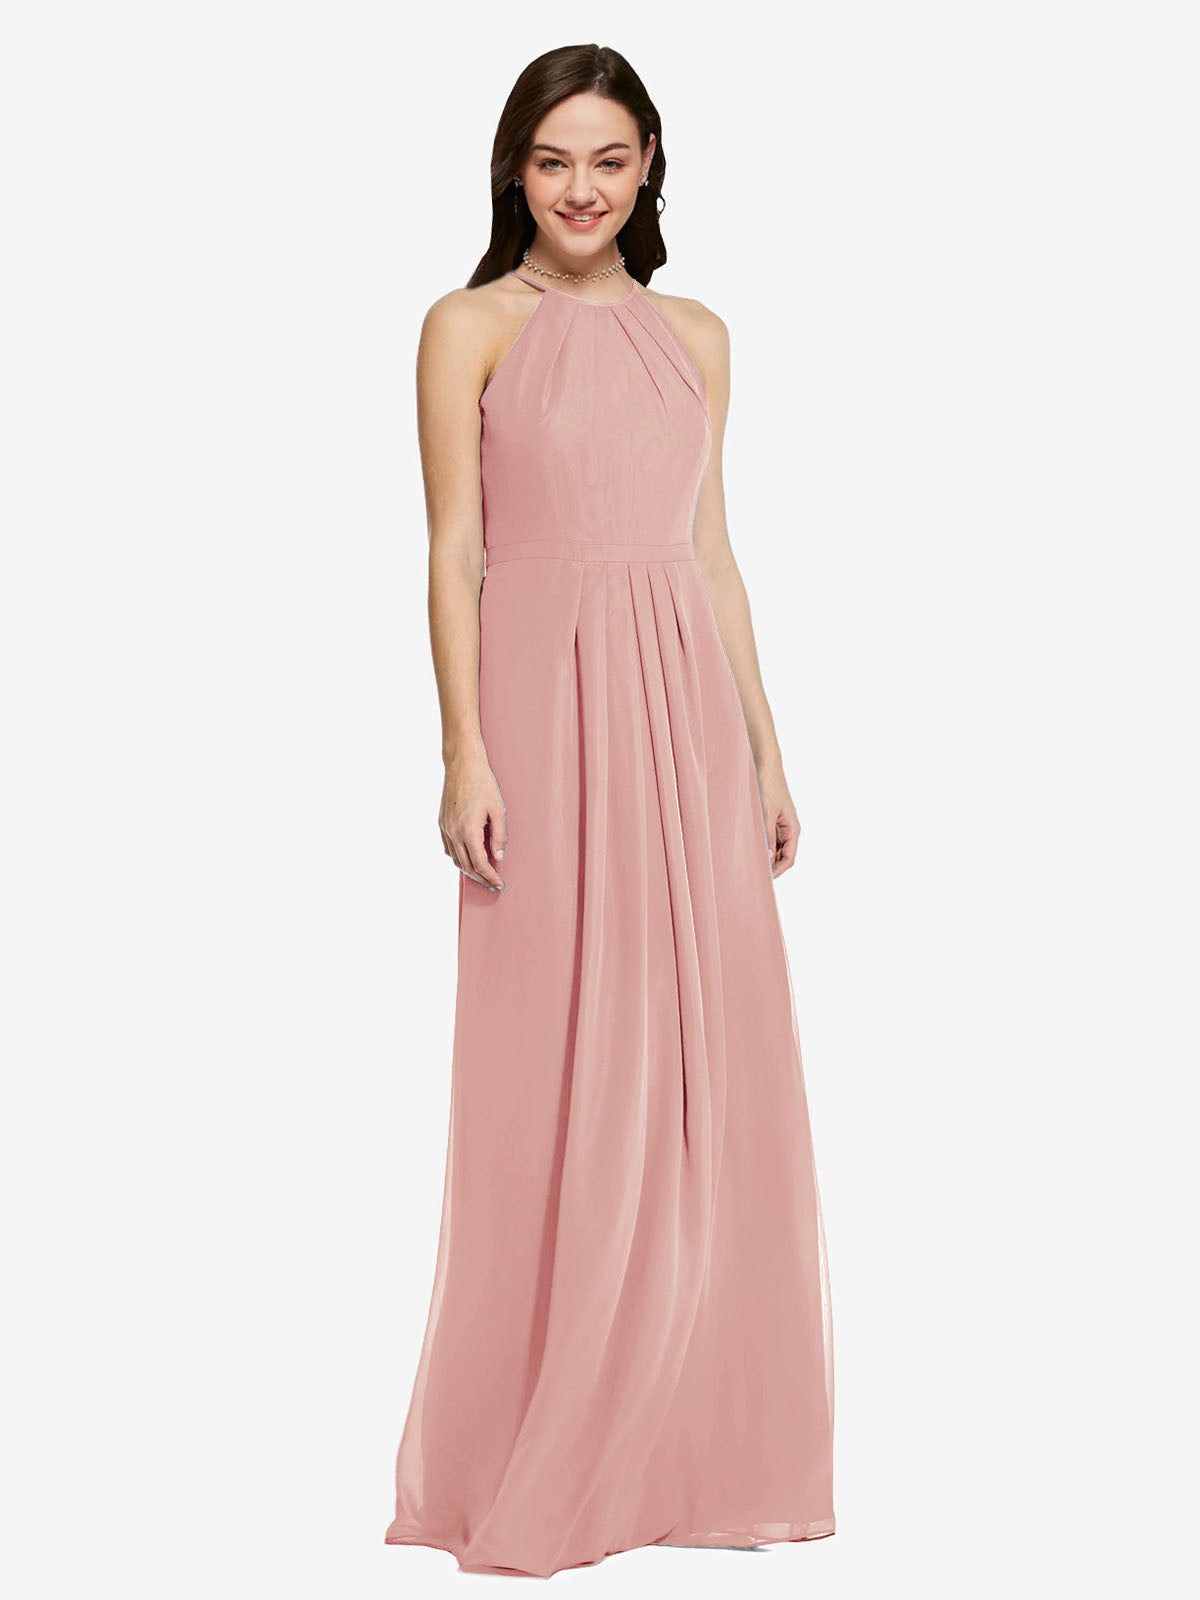 Long Sheath High Neck Halter Sleeveless Bliss Chiffon Bridesmaid Dress Koloti